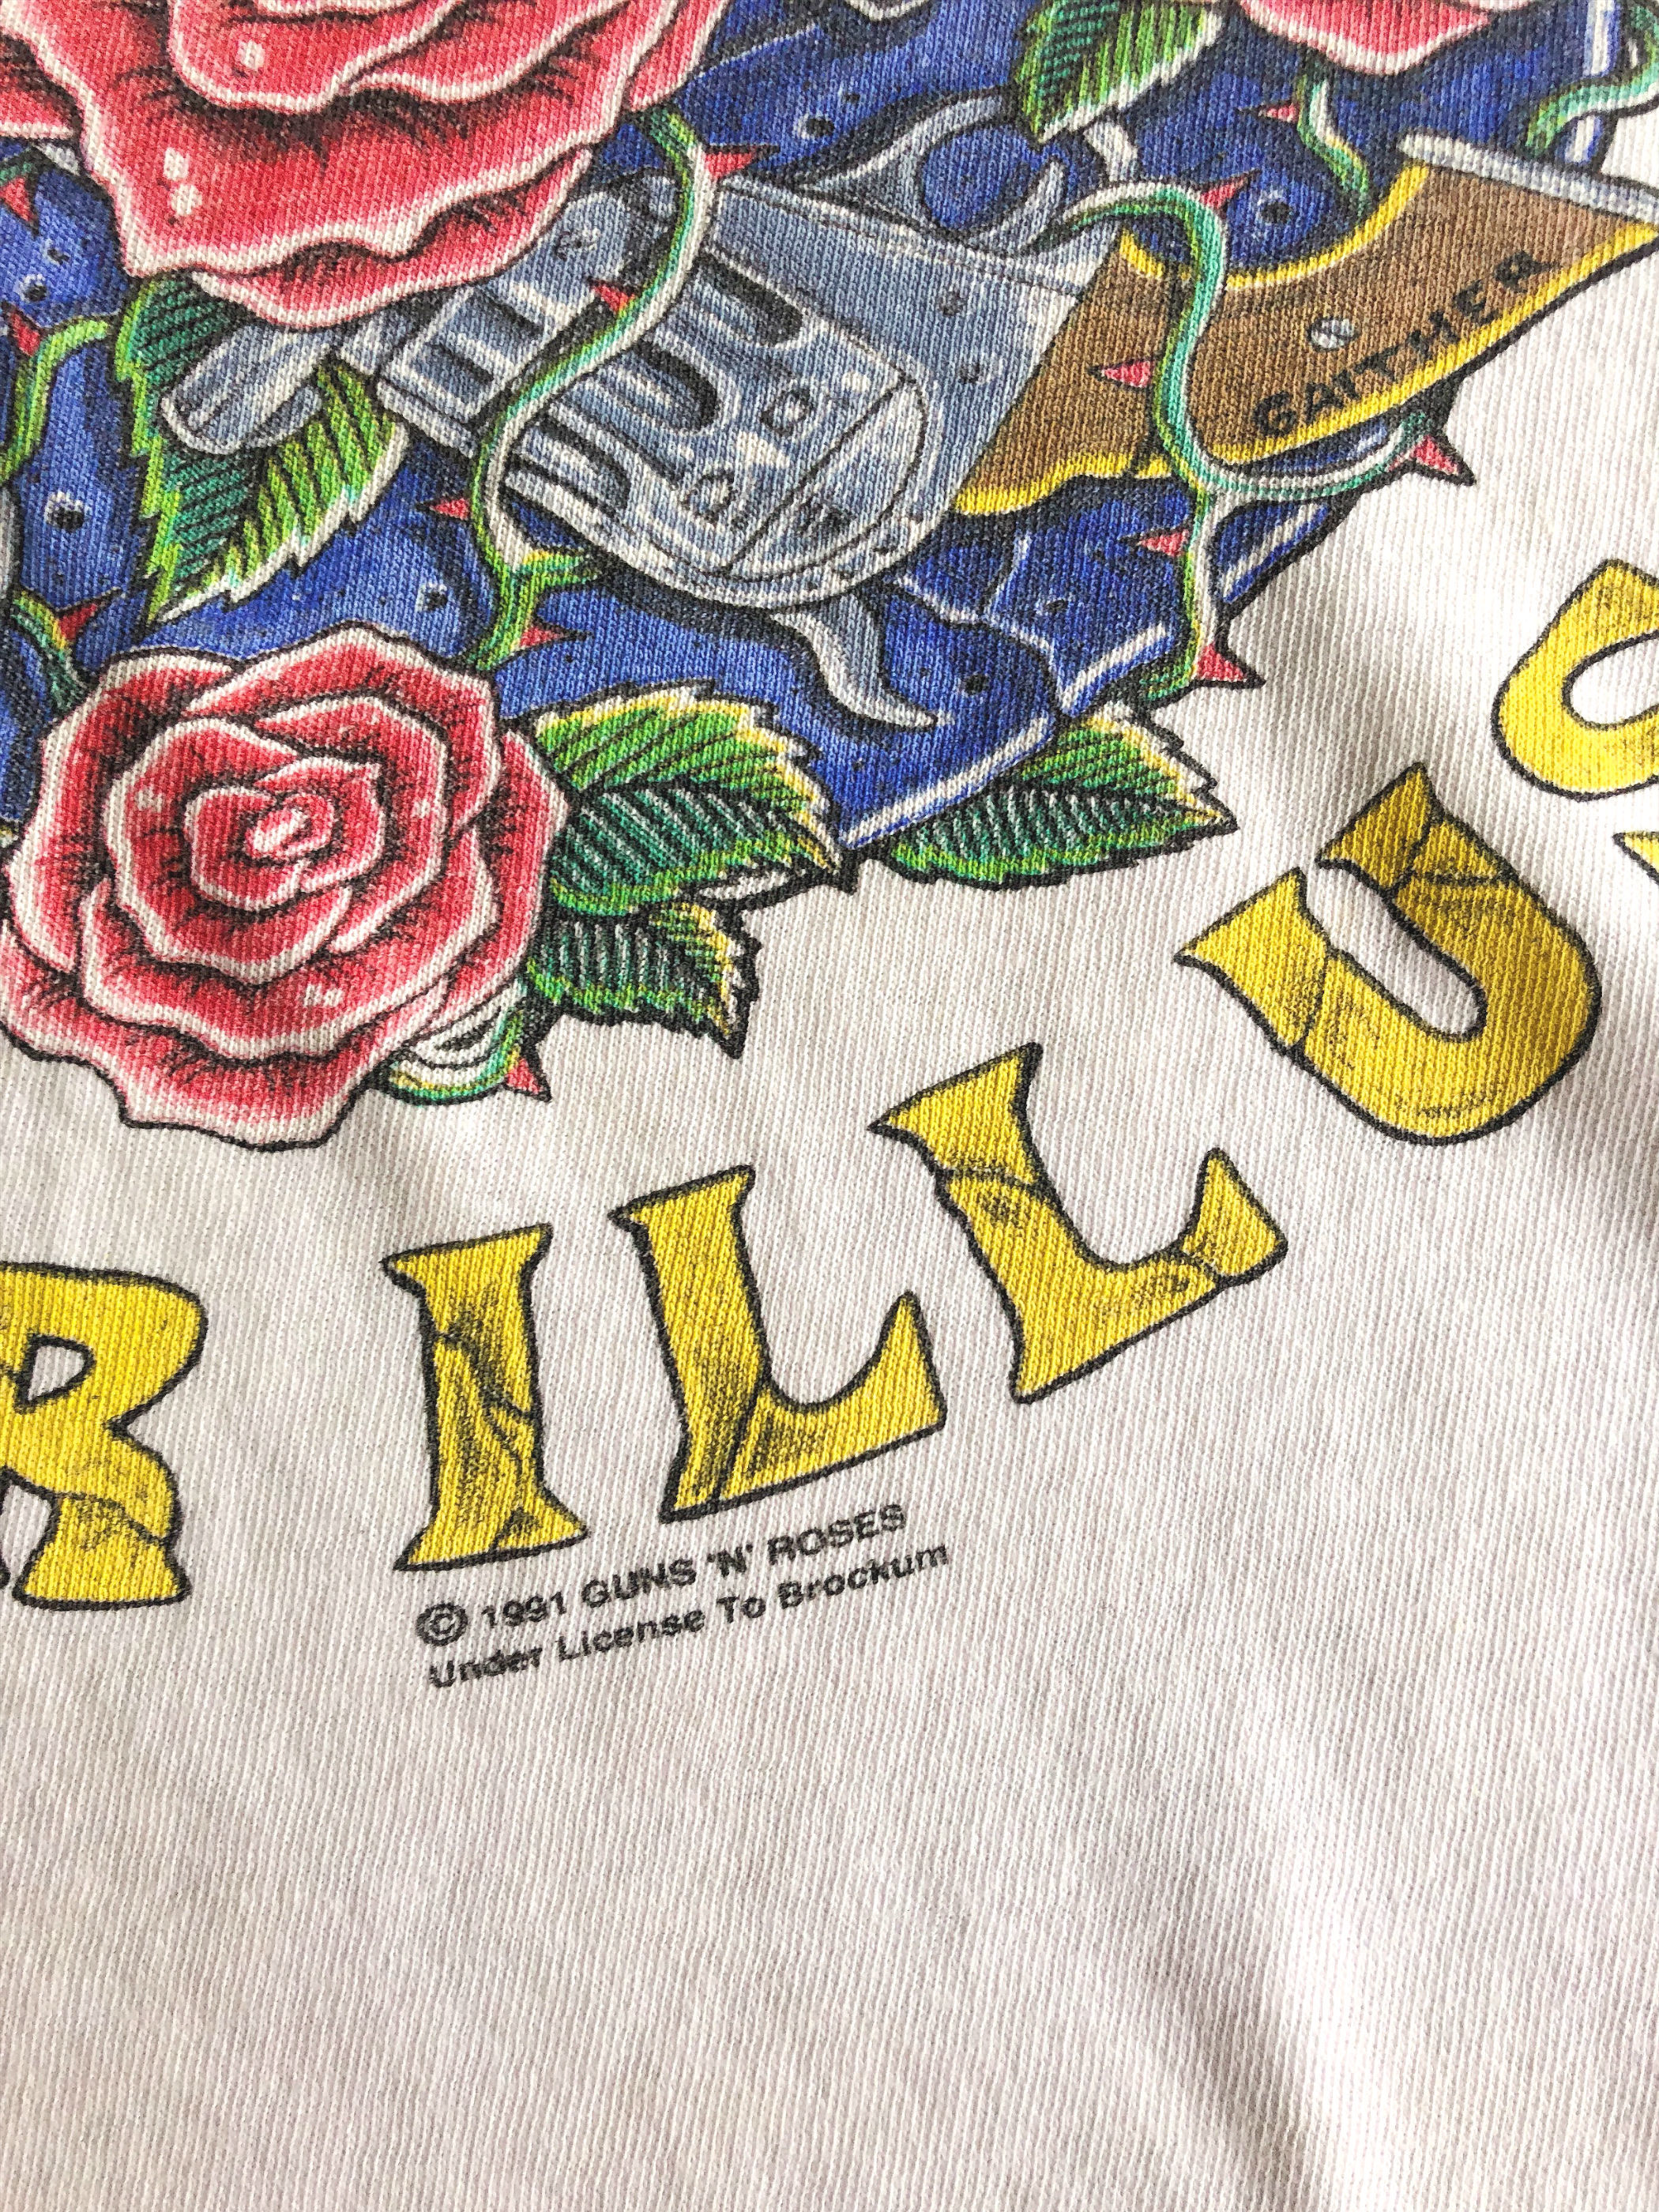 Guns N' Roses/Use Your Illusion 1991 T-shirt